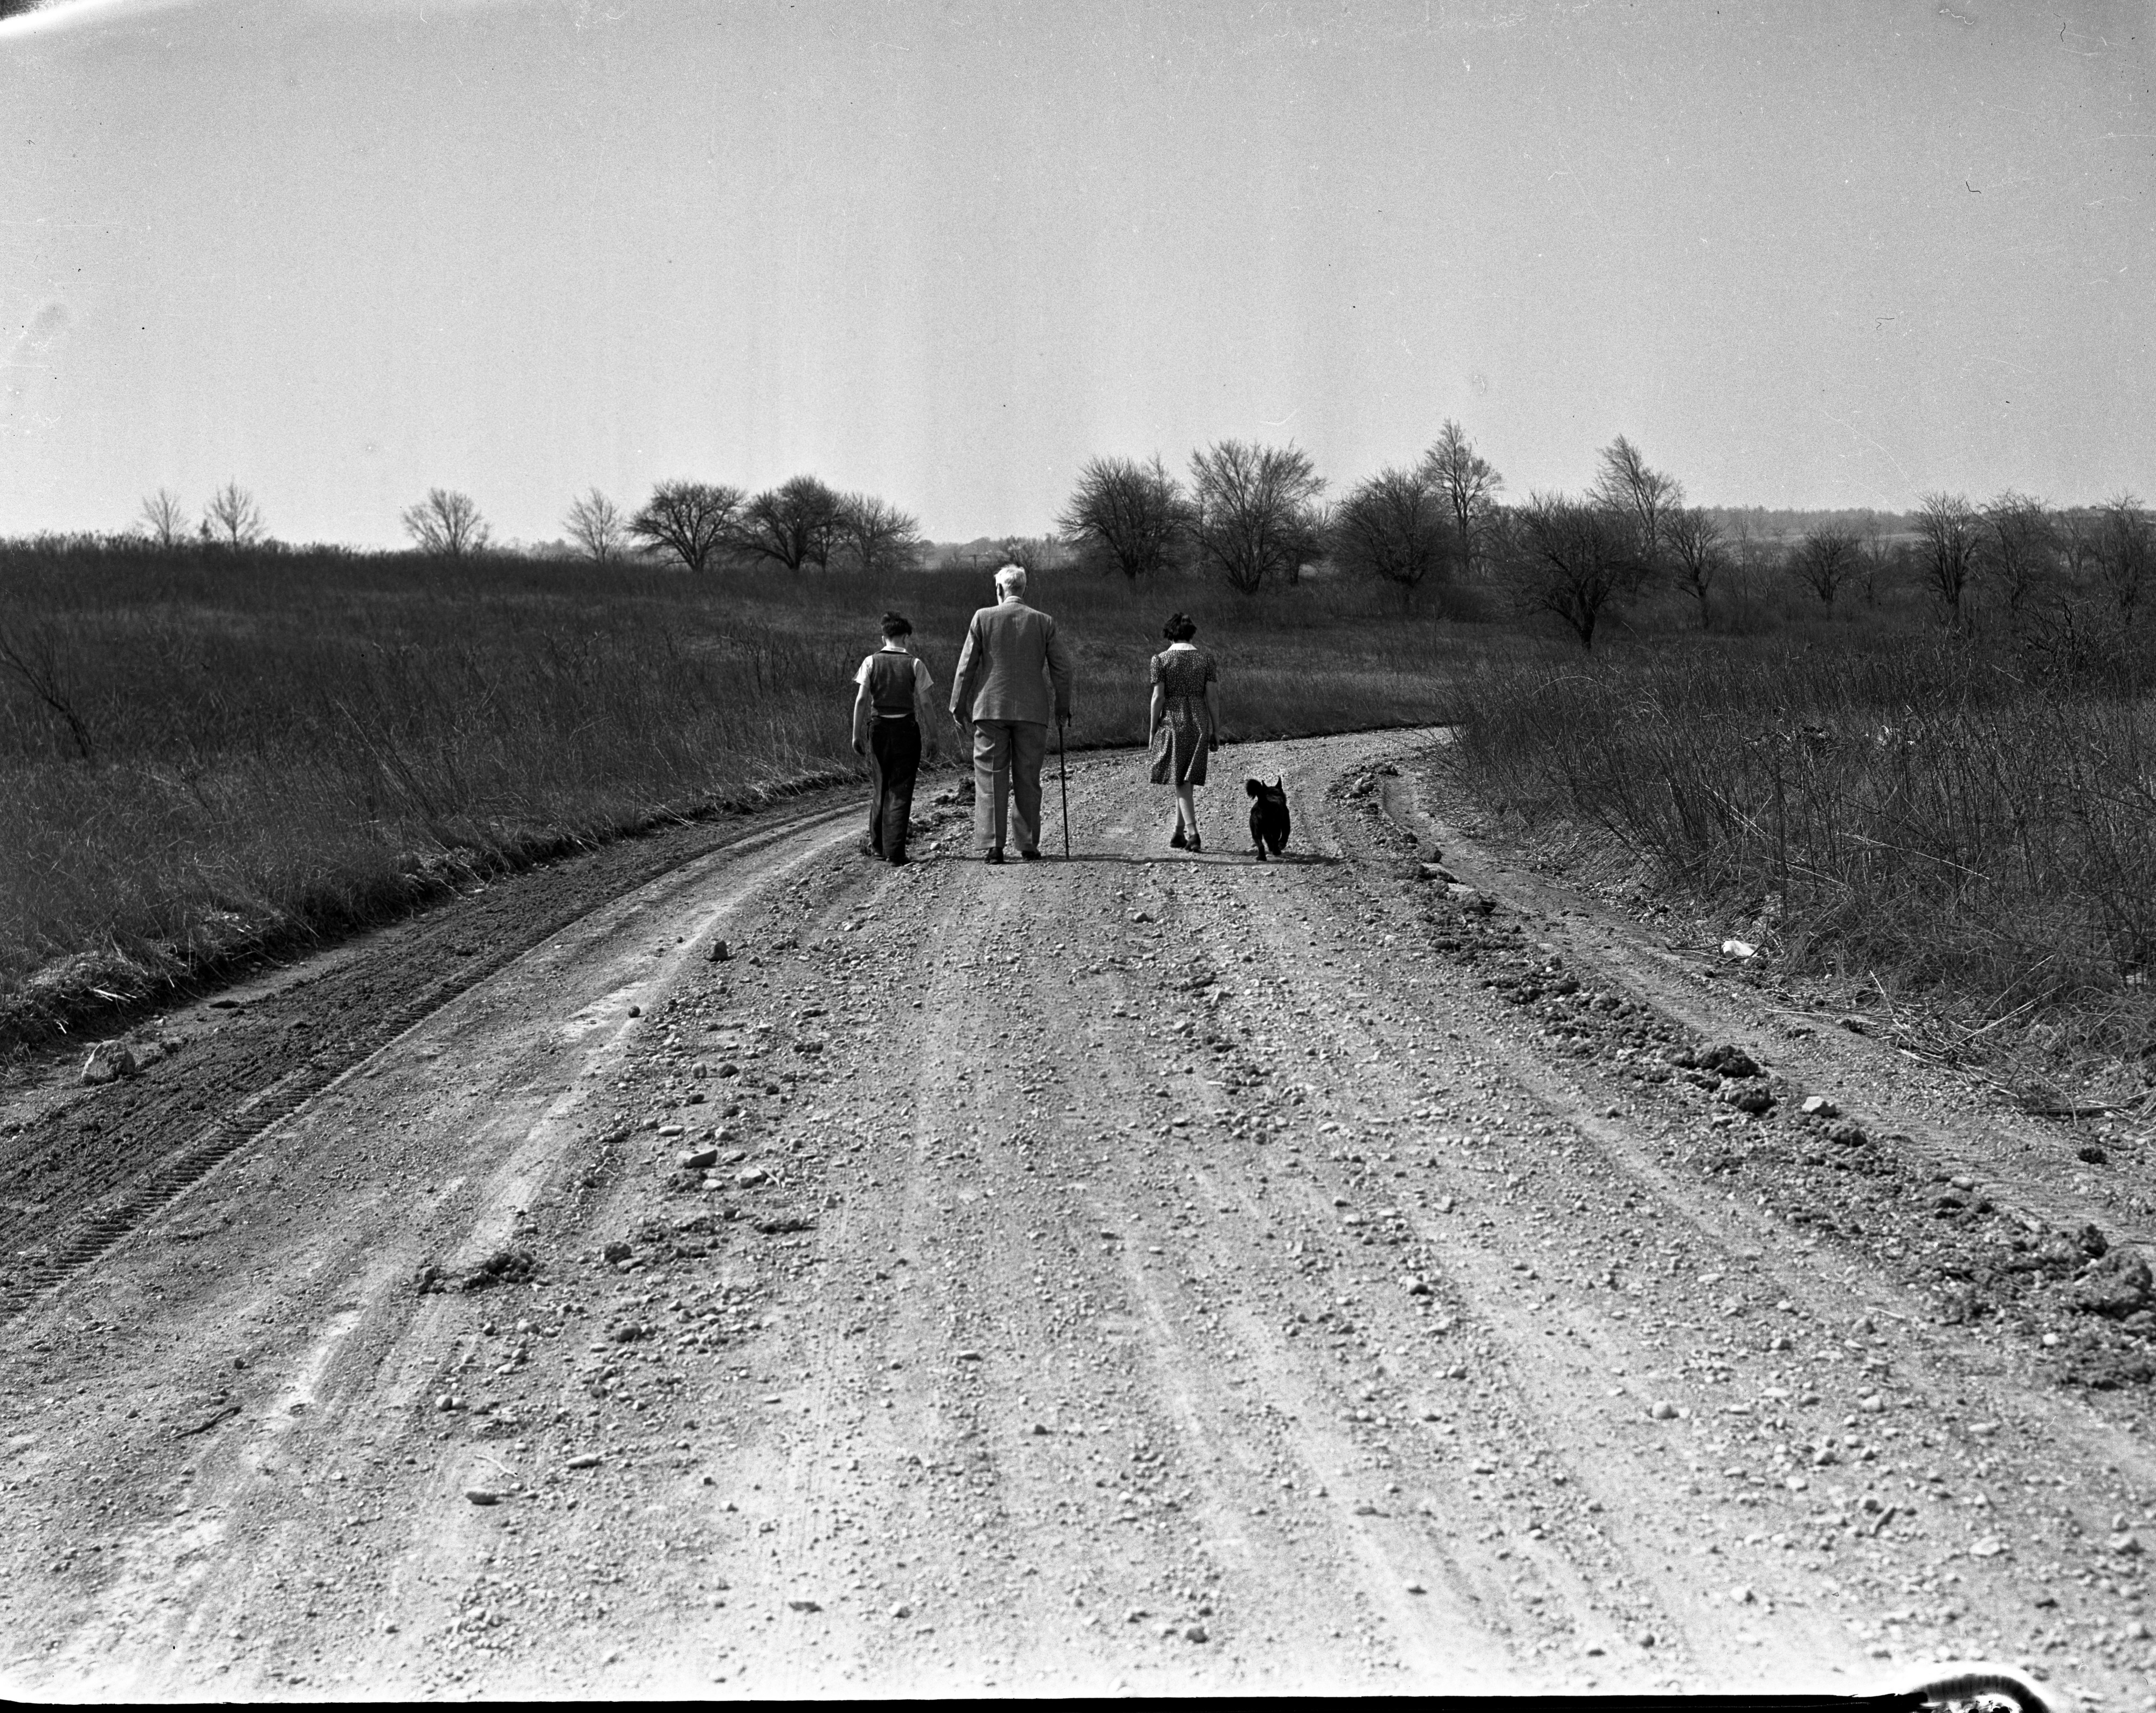 Bobby and the Old Professor and Julia walking down the road, 1938 image